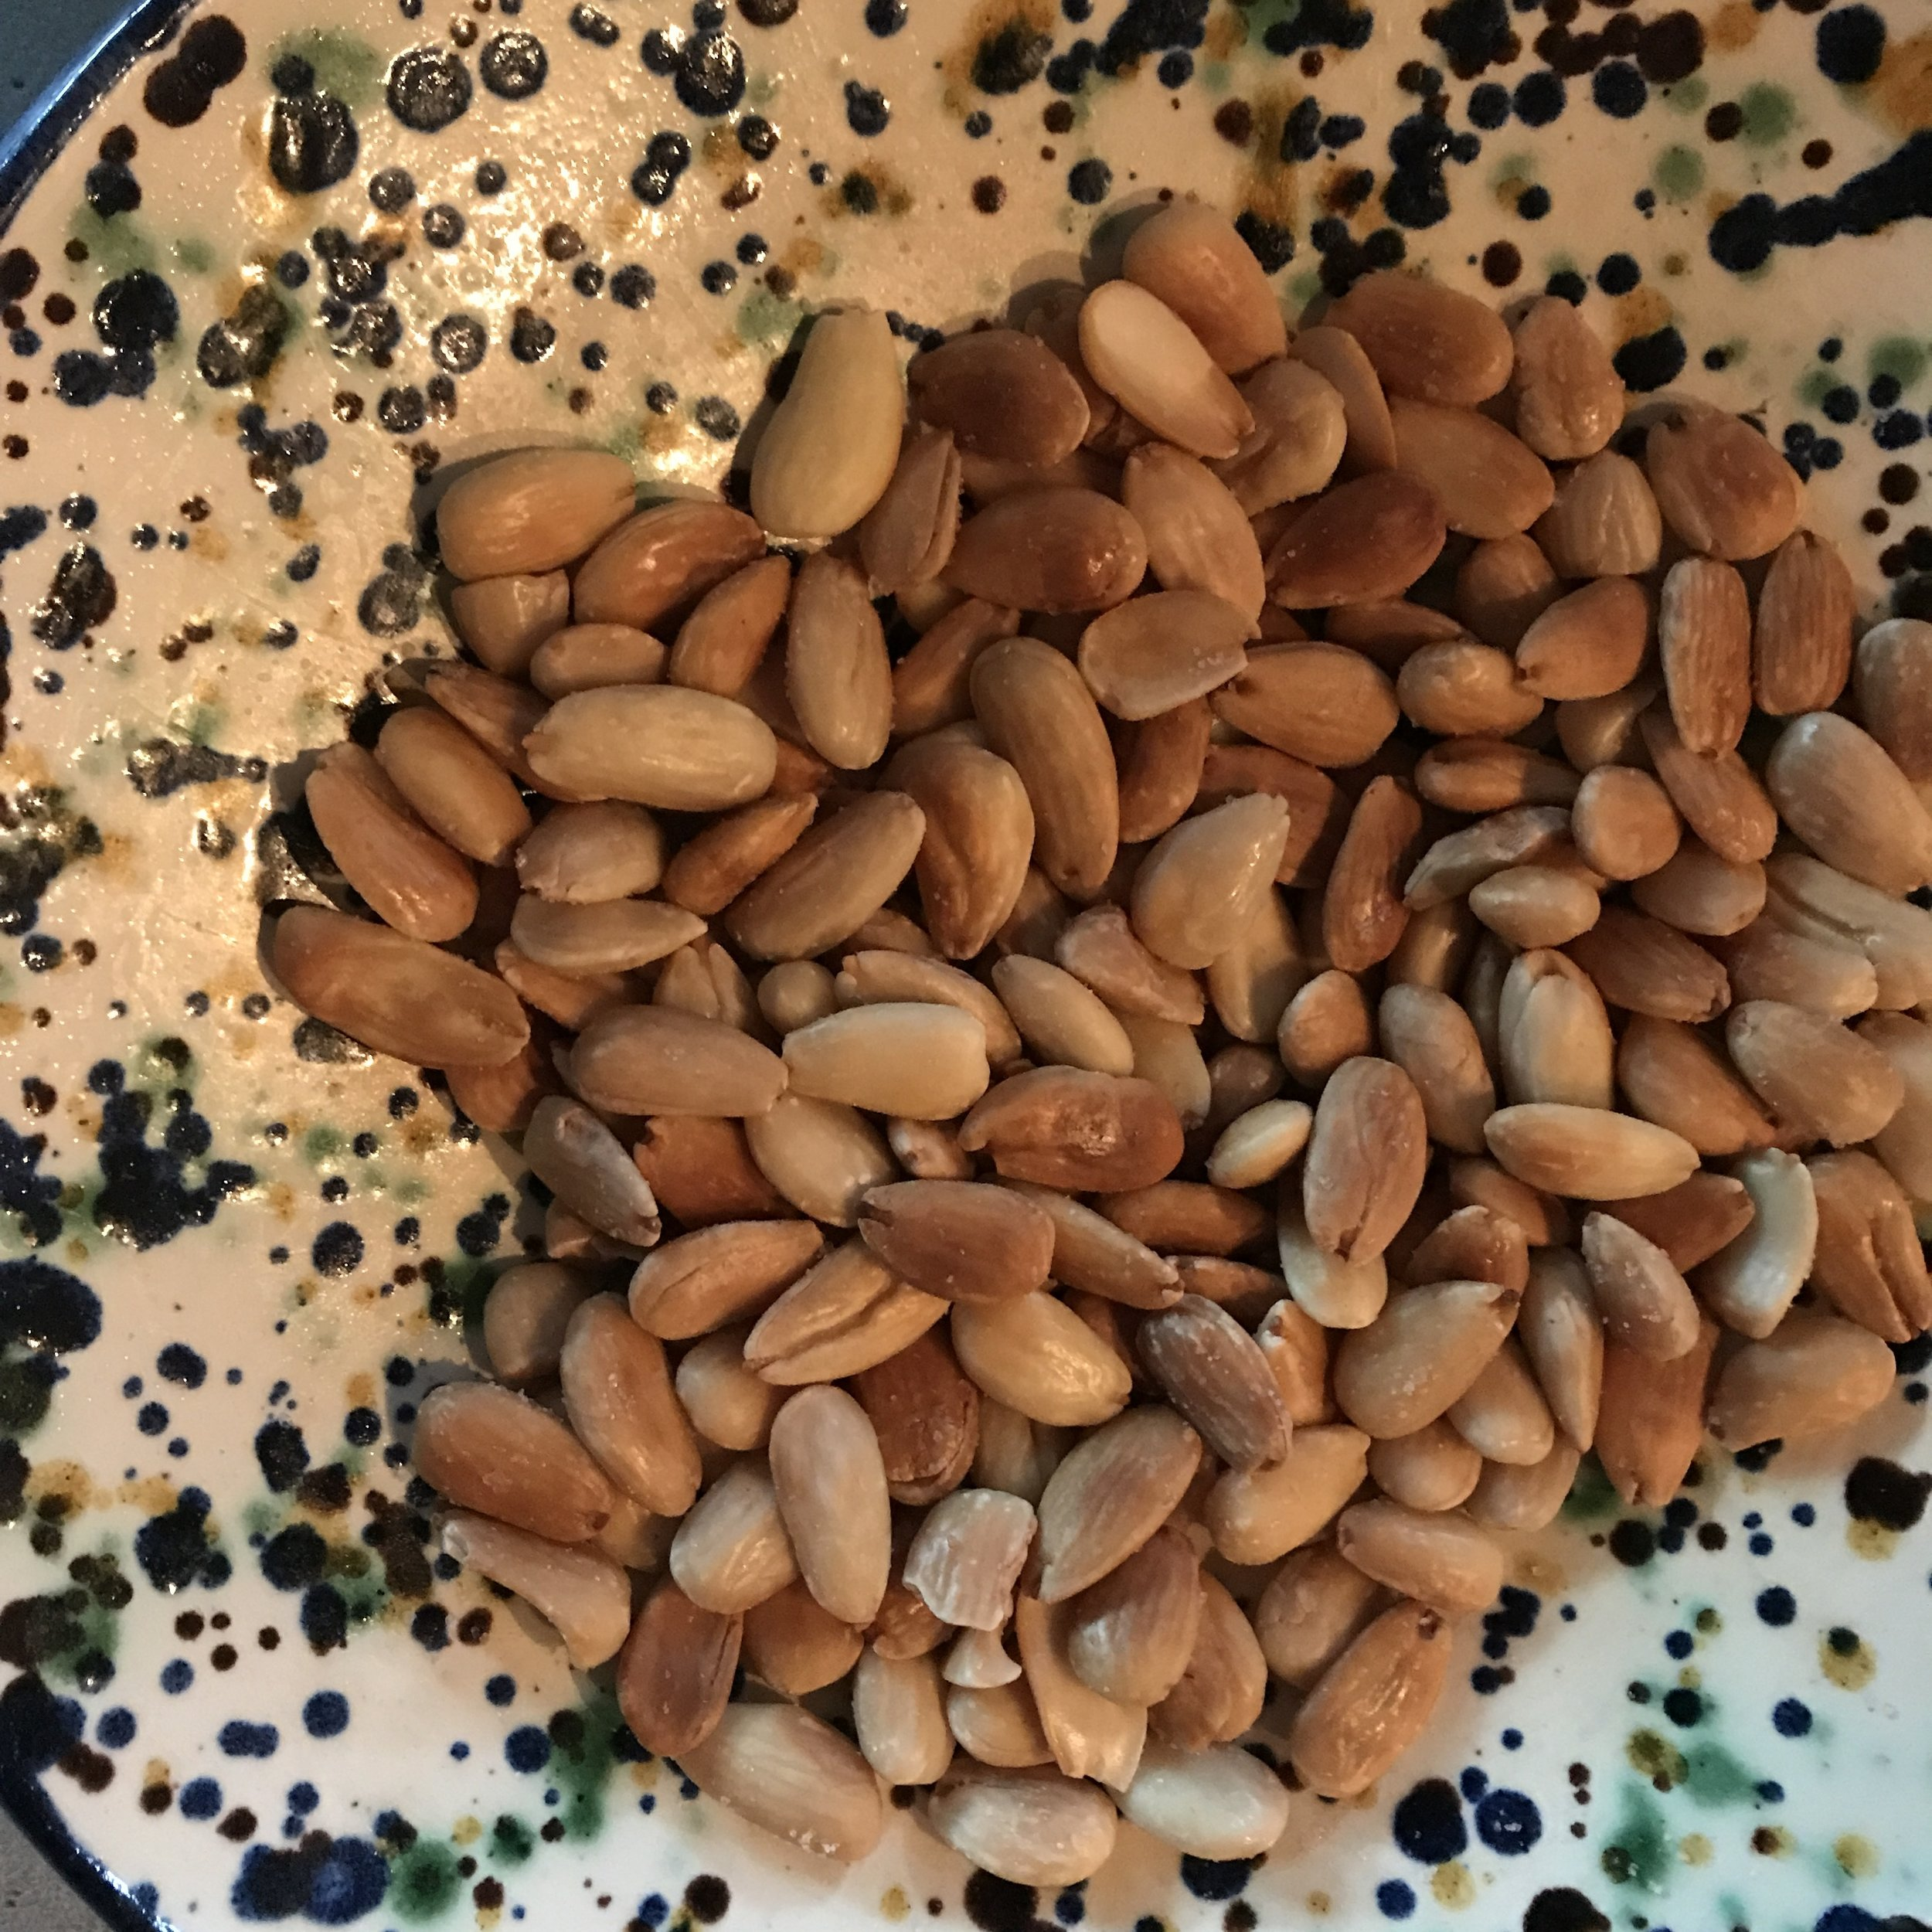 Who doesn't love Marcona almonds? Even better when presented in local pottery from Bisbal.